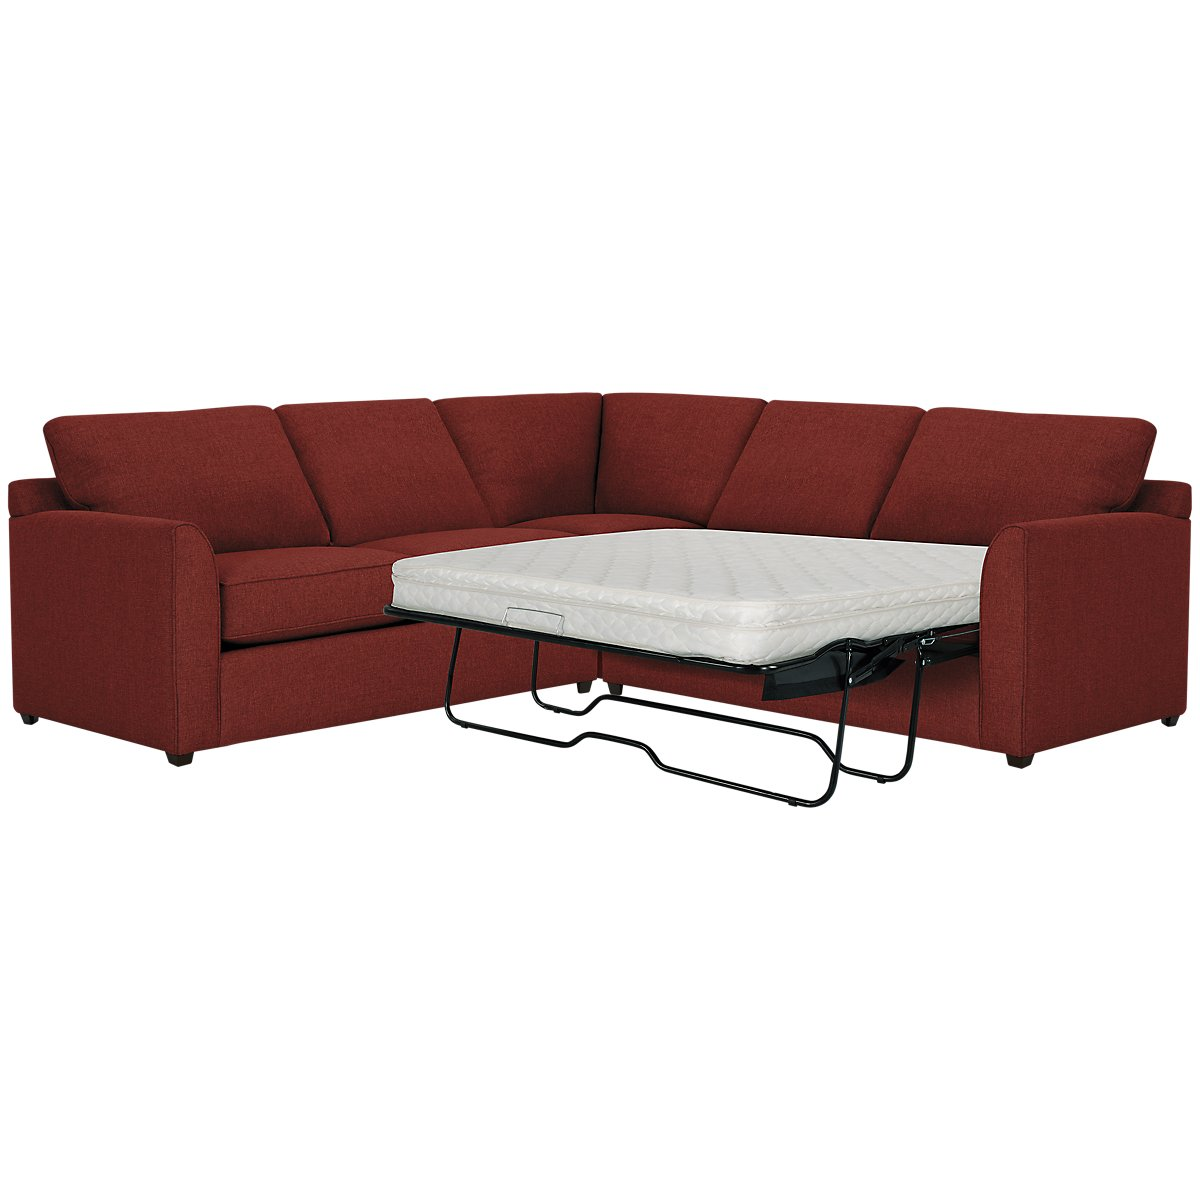 Asheville Red Fabric Two-Arm Right Innerspring Sleeper Sectional